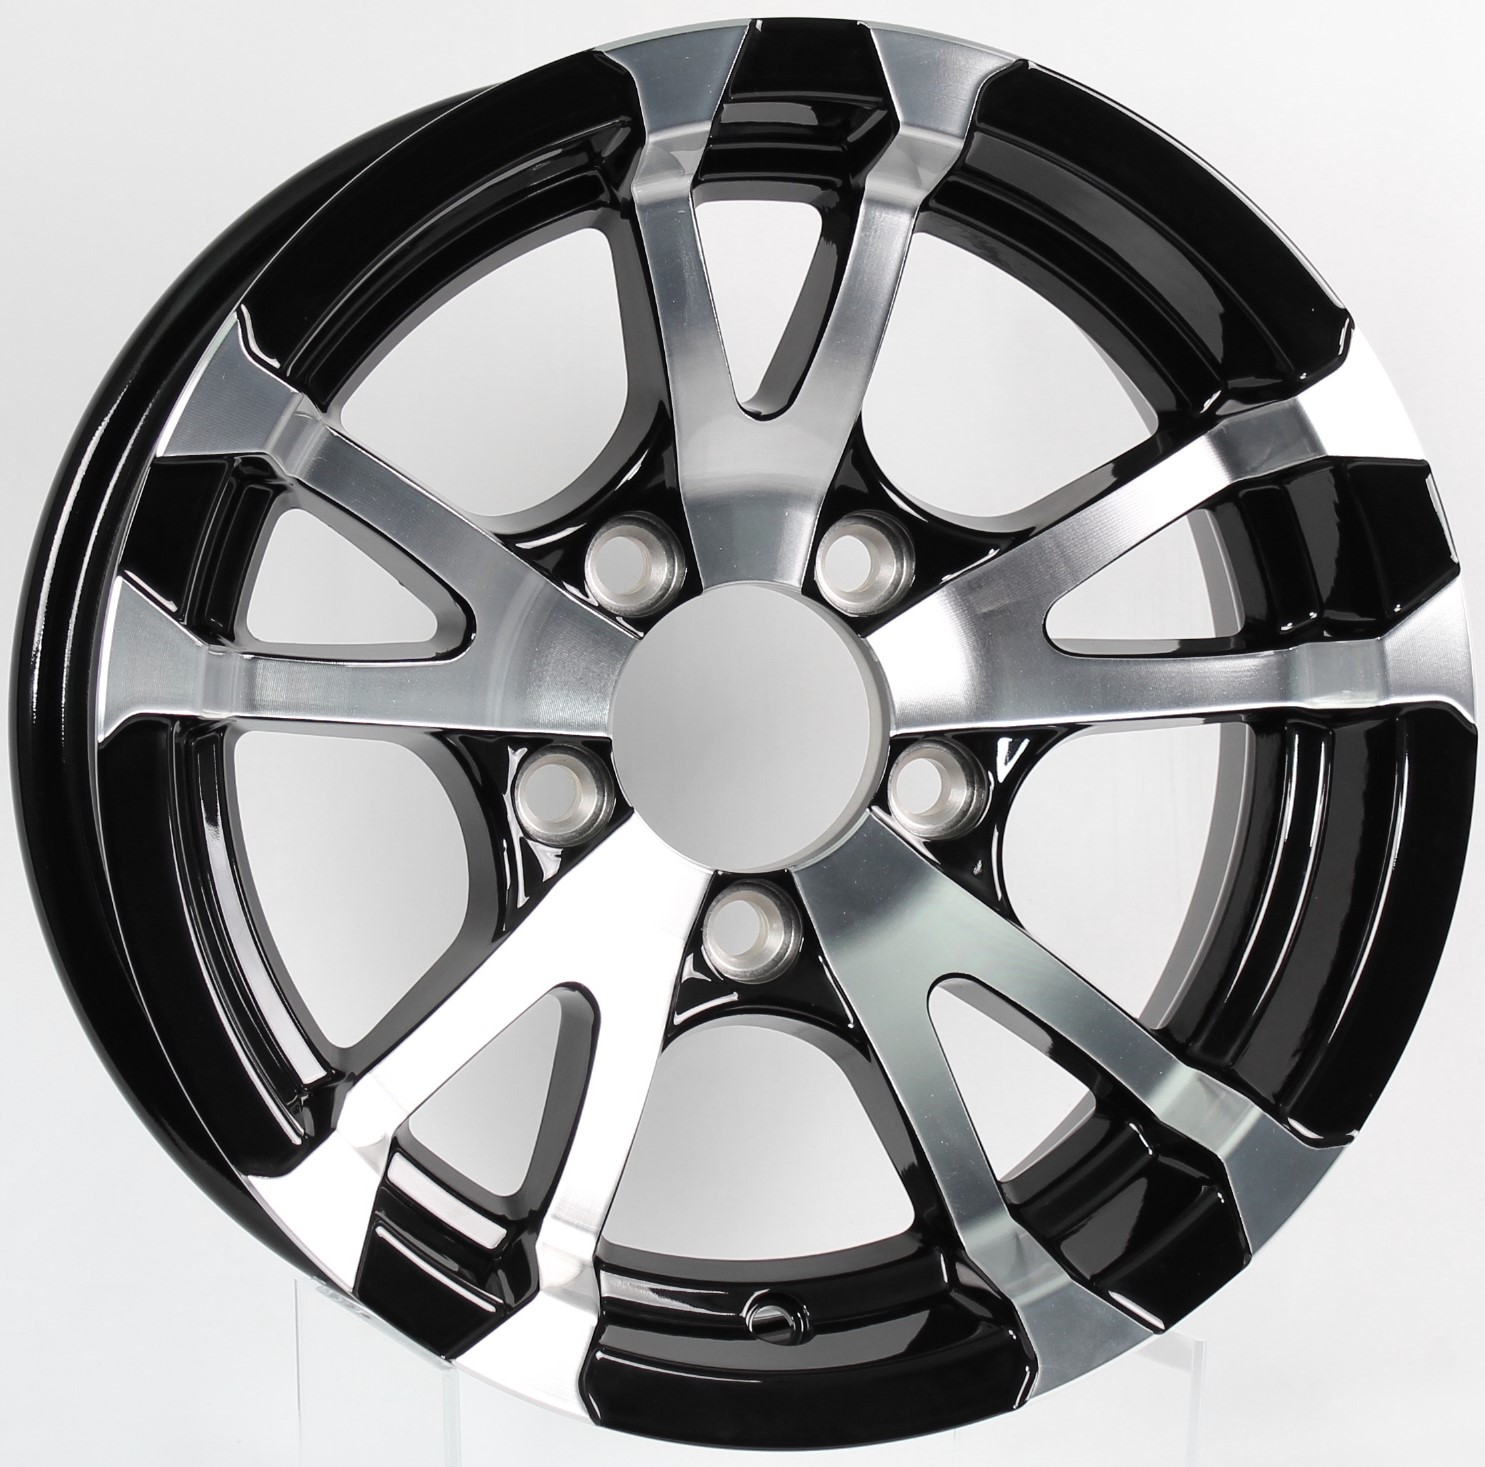 Avalanche- 13x5 5-4.5 Black Aluminum Trailer Wheel Image